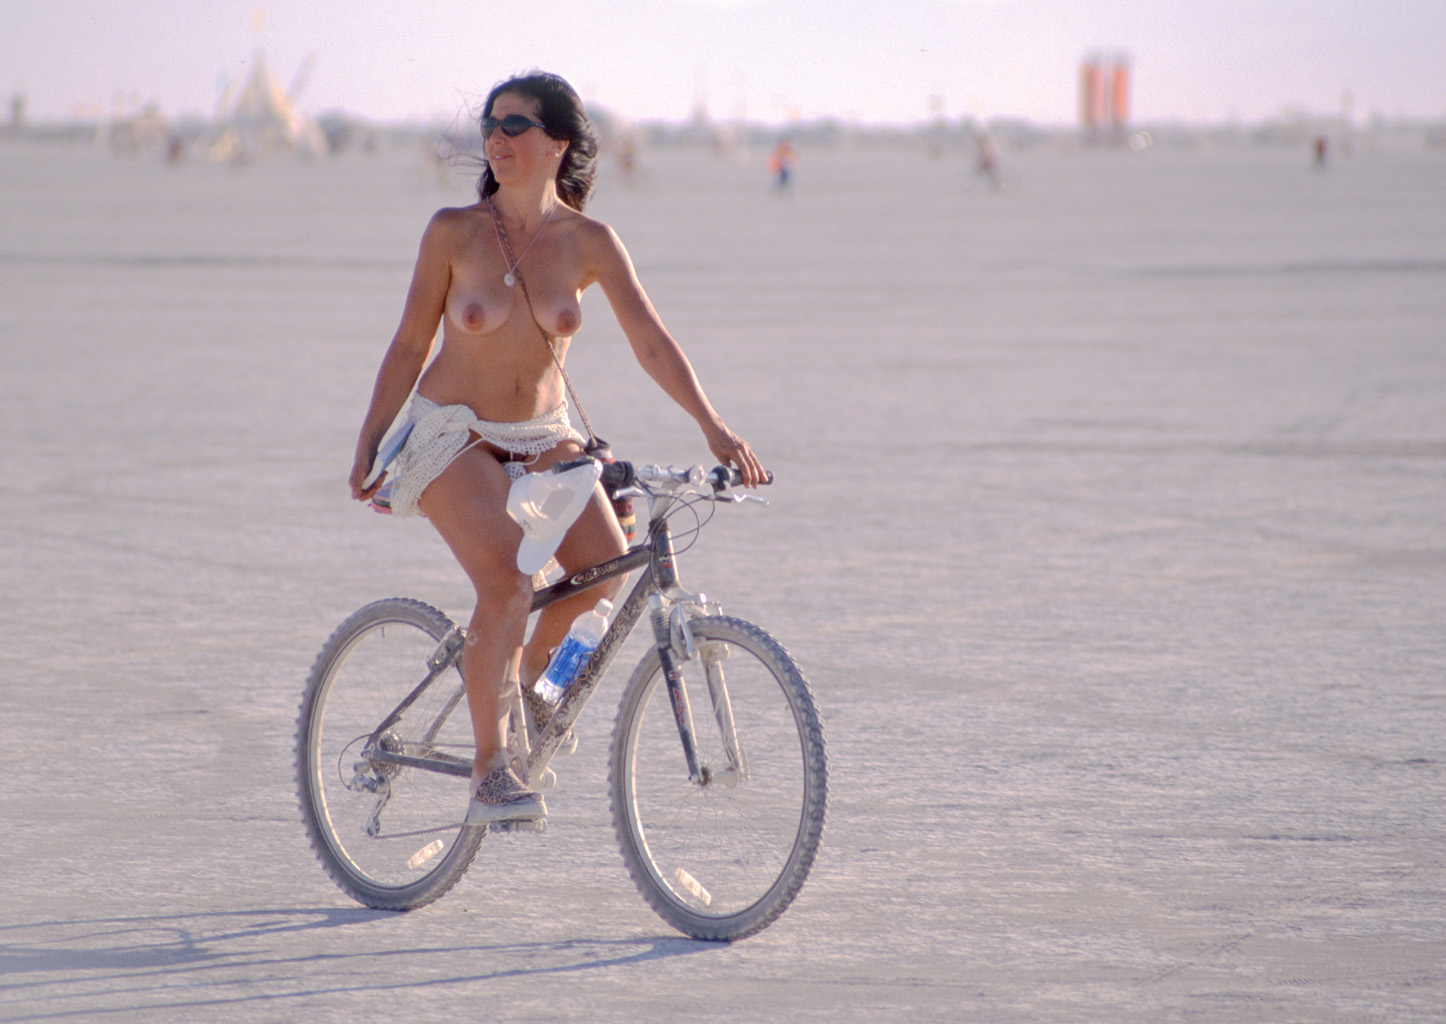 Hot babes loves to ride bike naked